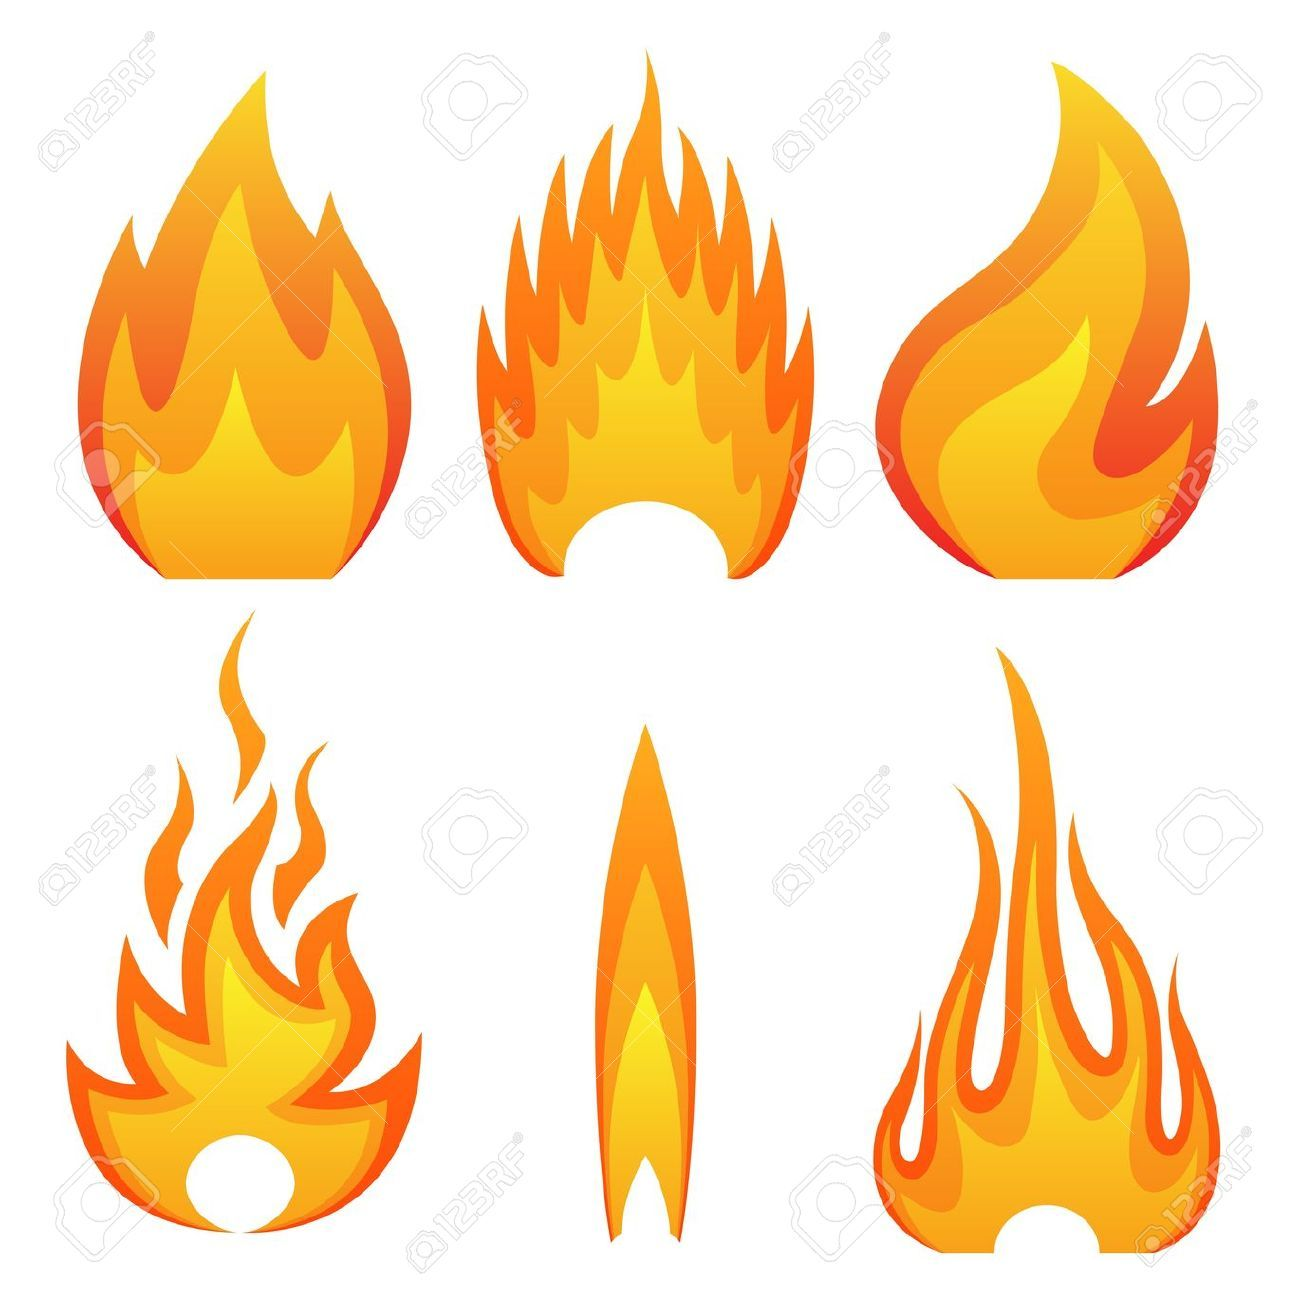 Fire Flame Stock Illustrations, Cliparts And Royalty Free